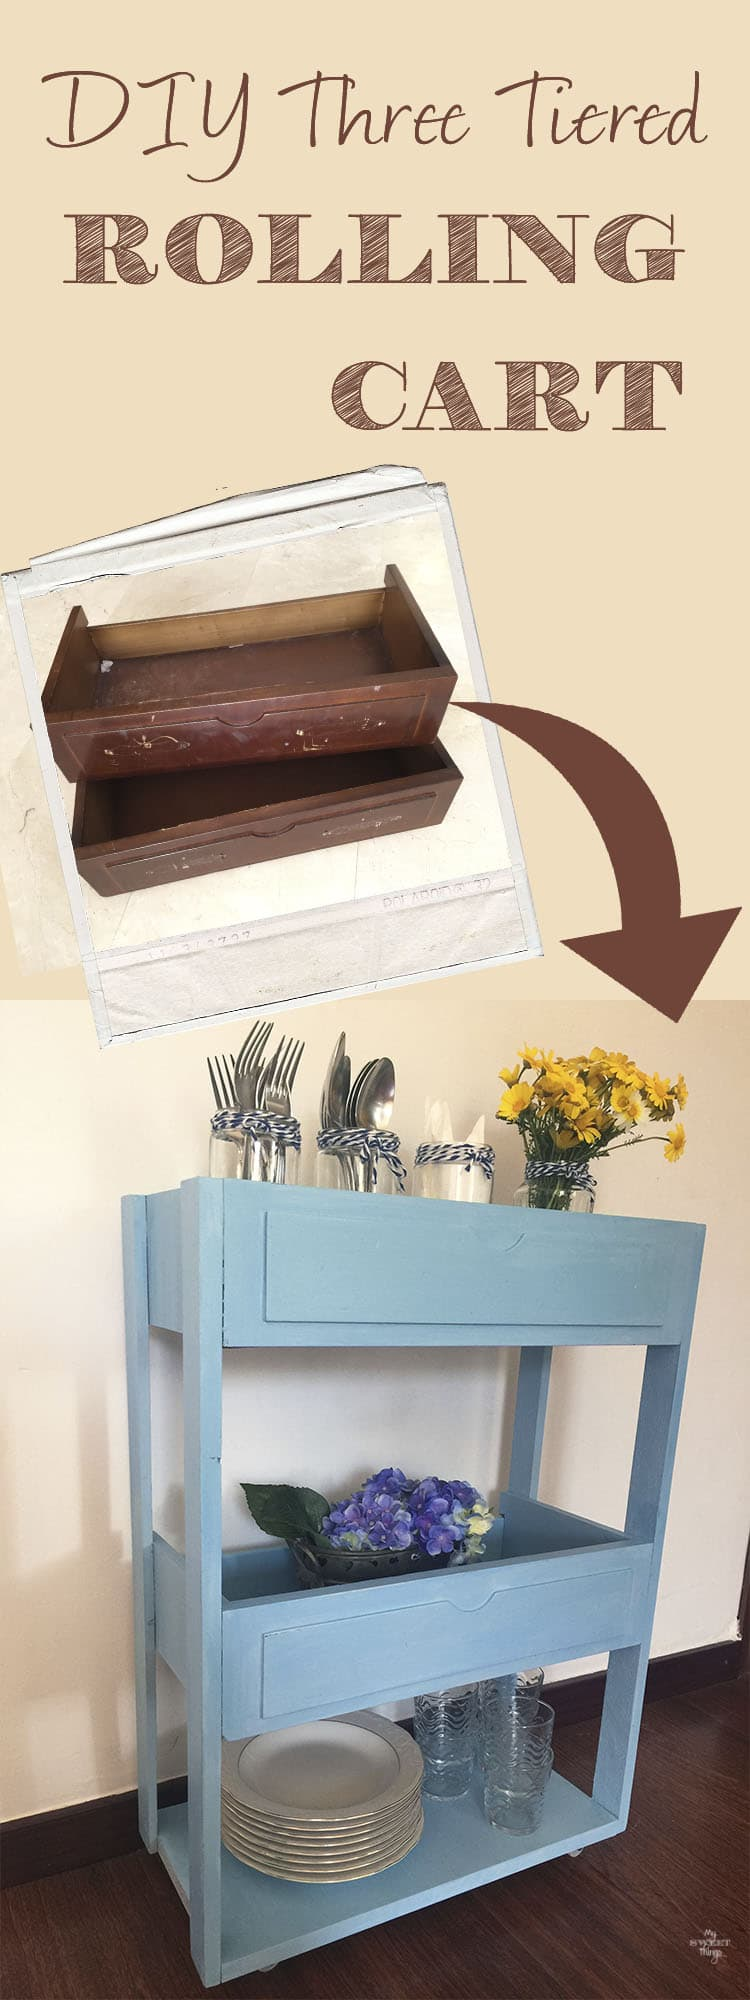 DIY Three tiered rolling cart out of free drawers · My Sweet Things